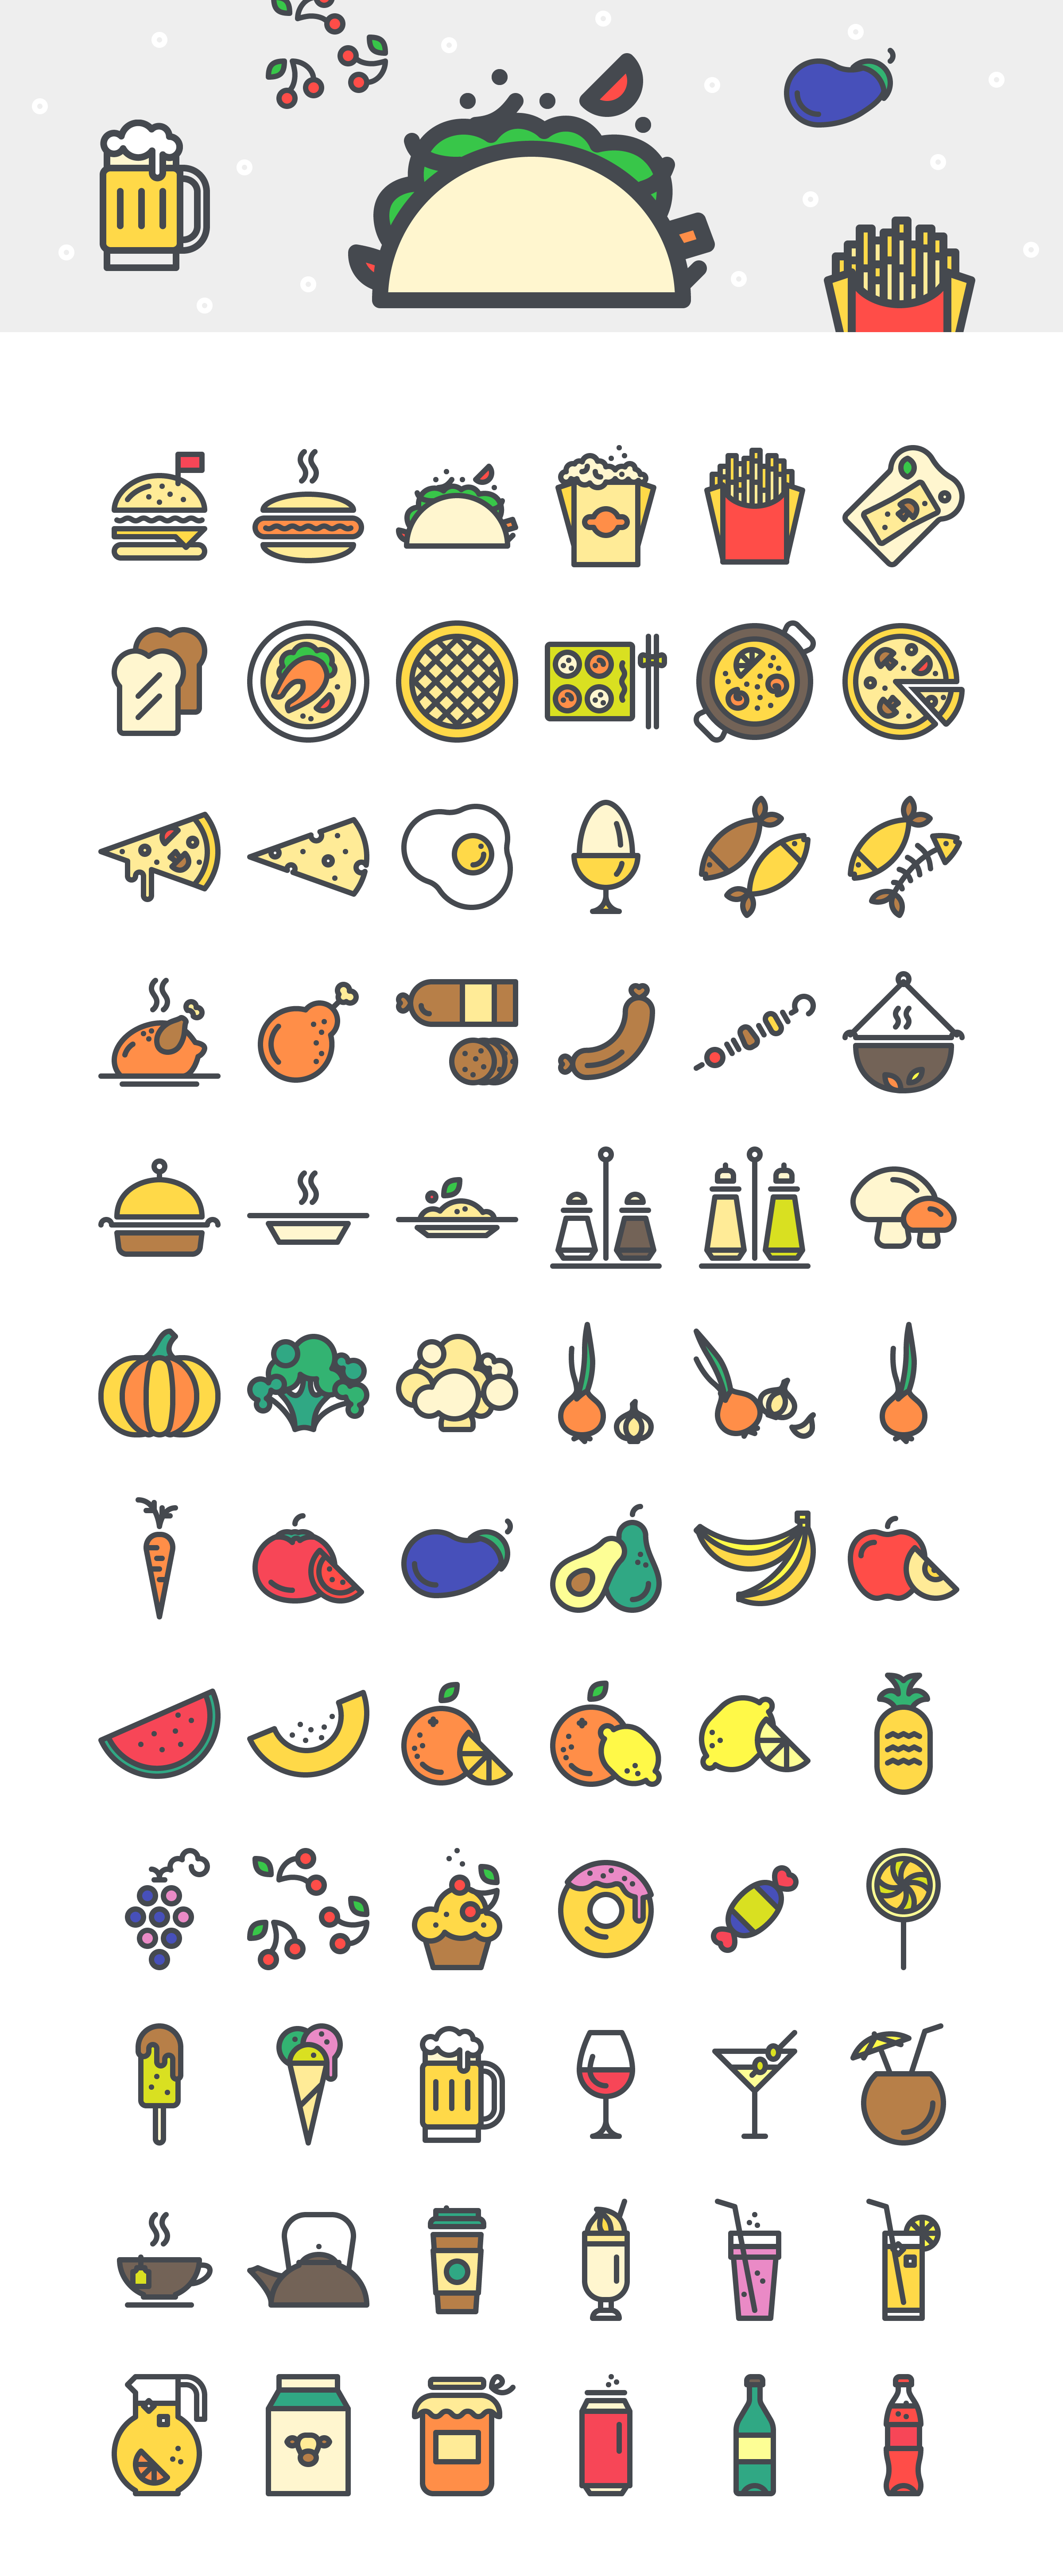 free vector icons available for free stuff